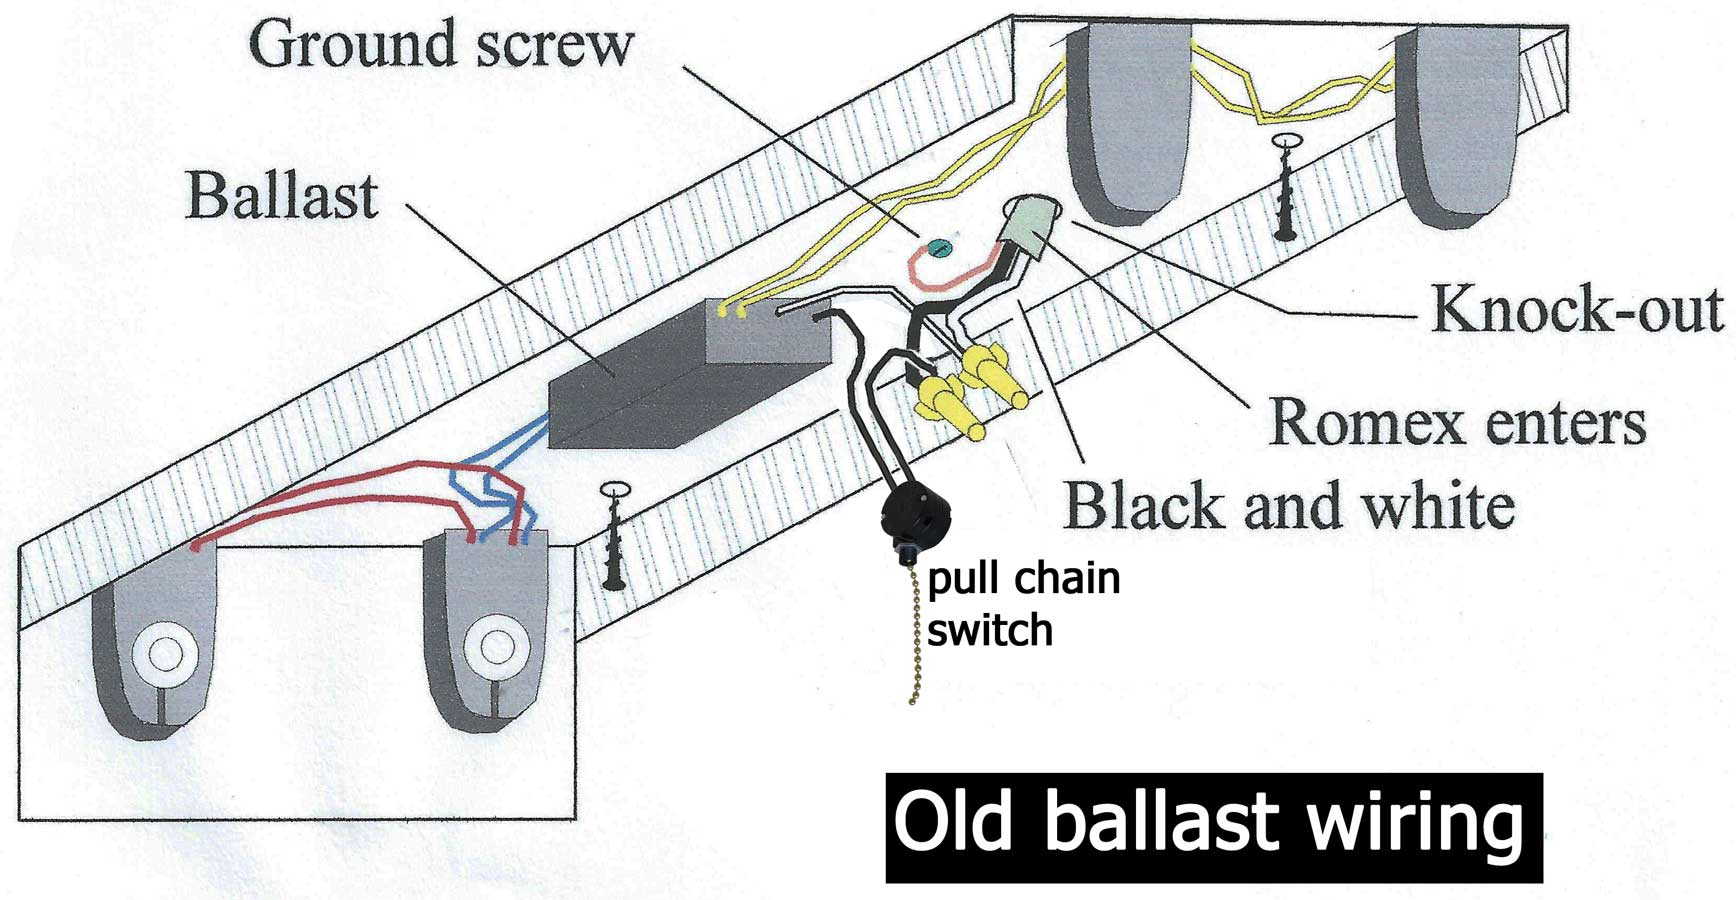 Ballast Wiring Tools Diy Enthusiasts Diagrams Advance T12 Diagram How To Wire Rh Waterheatertimer Org Emergency